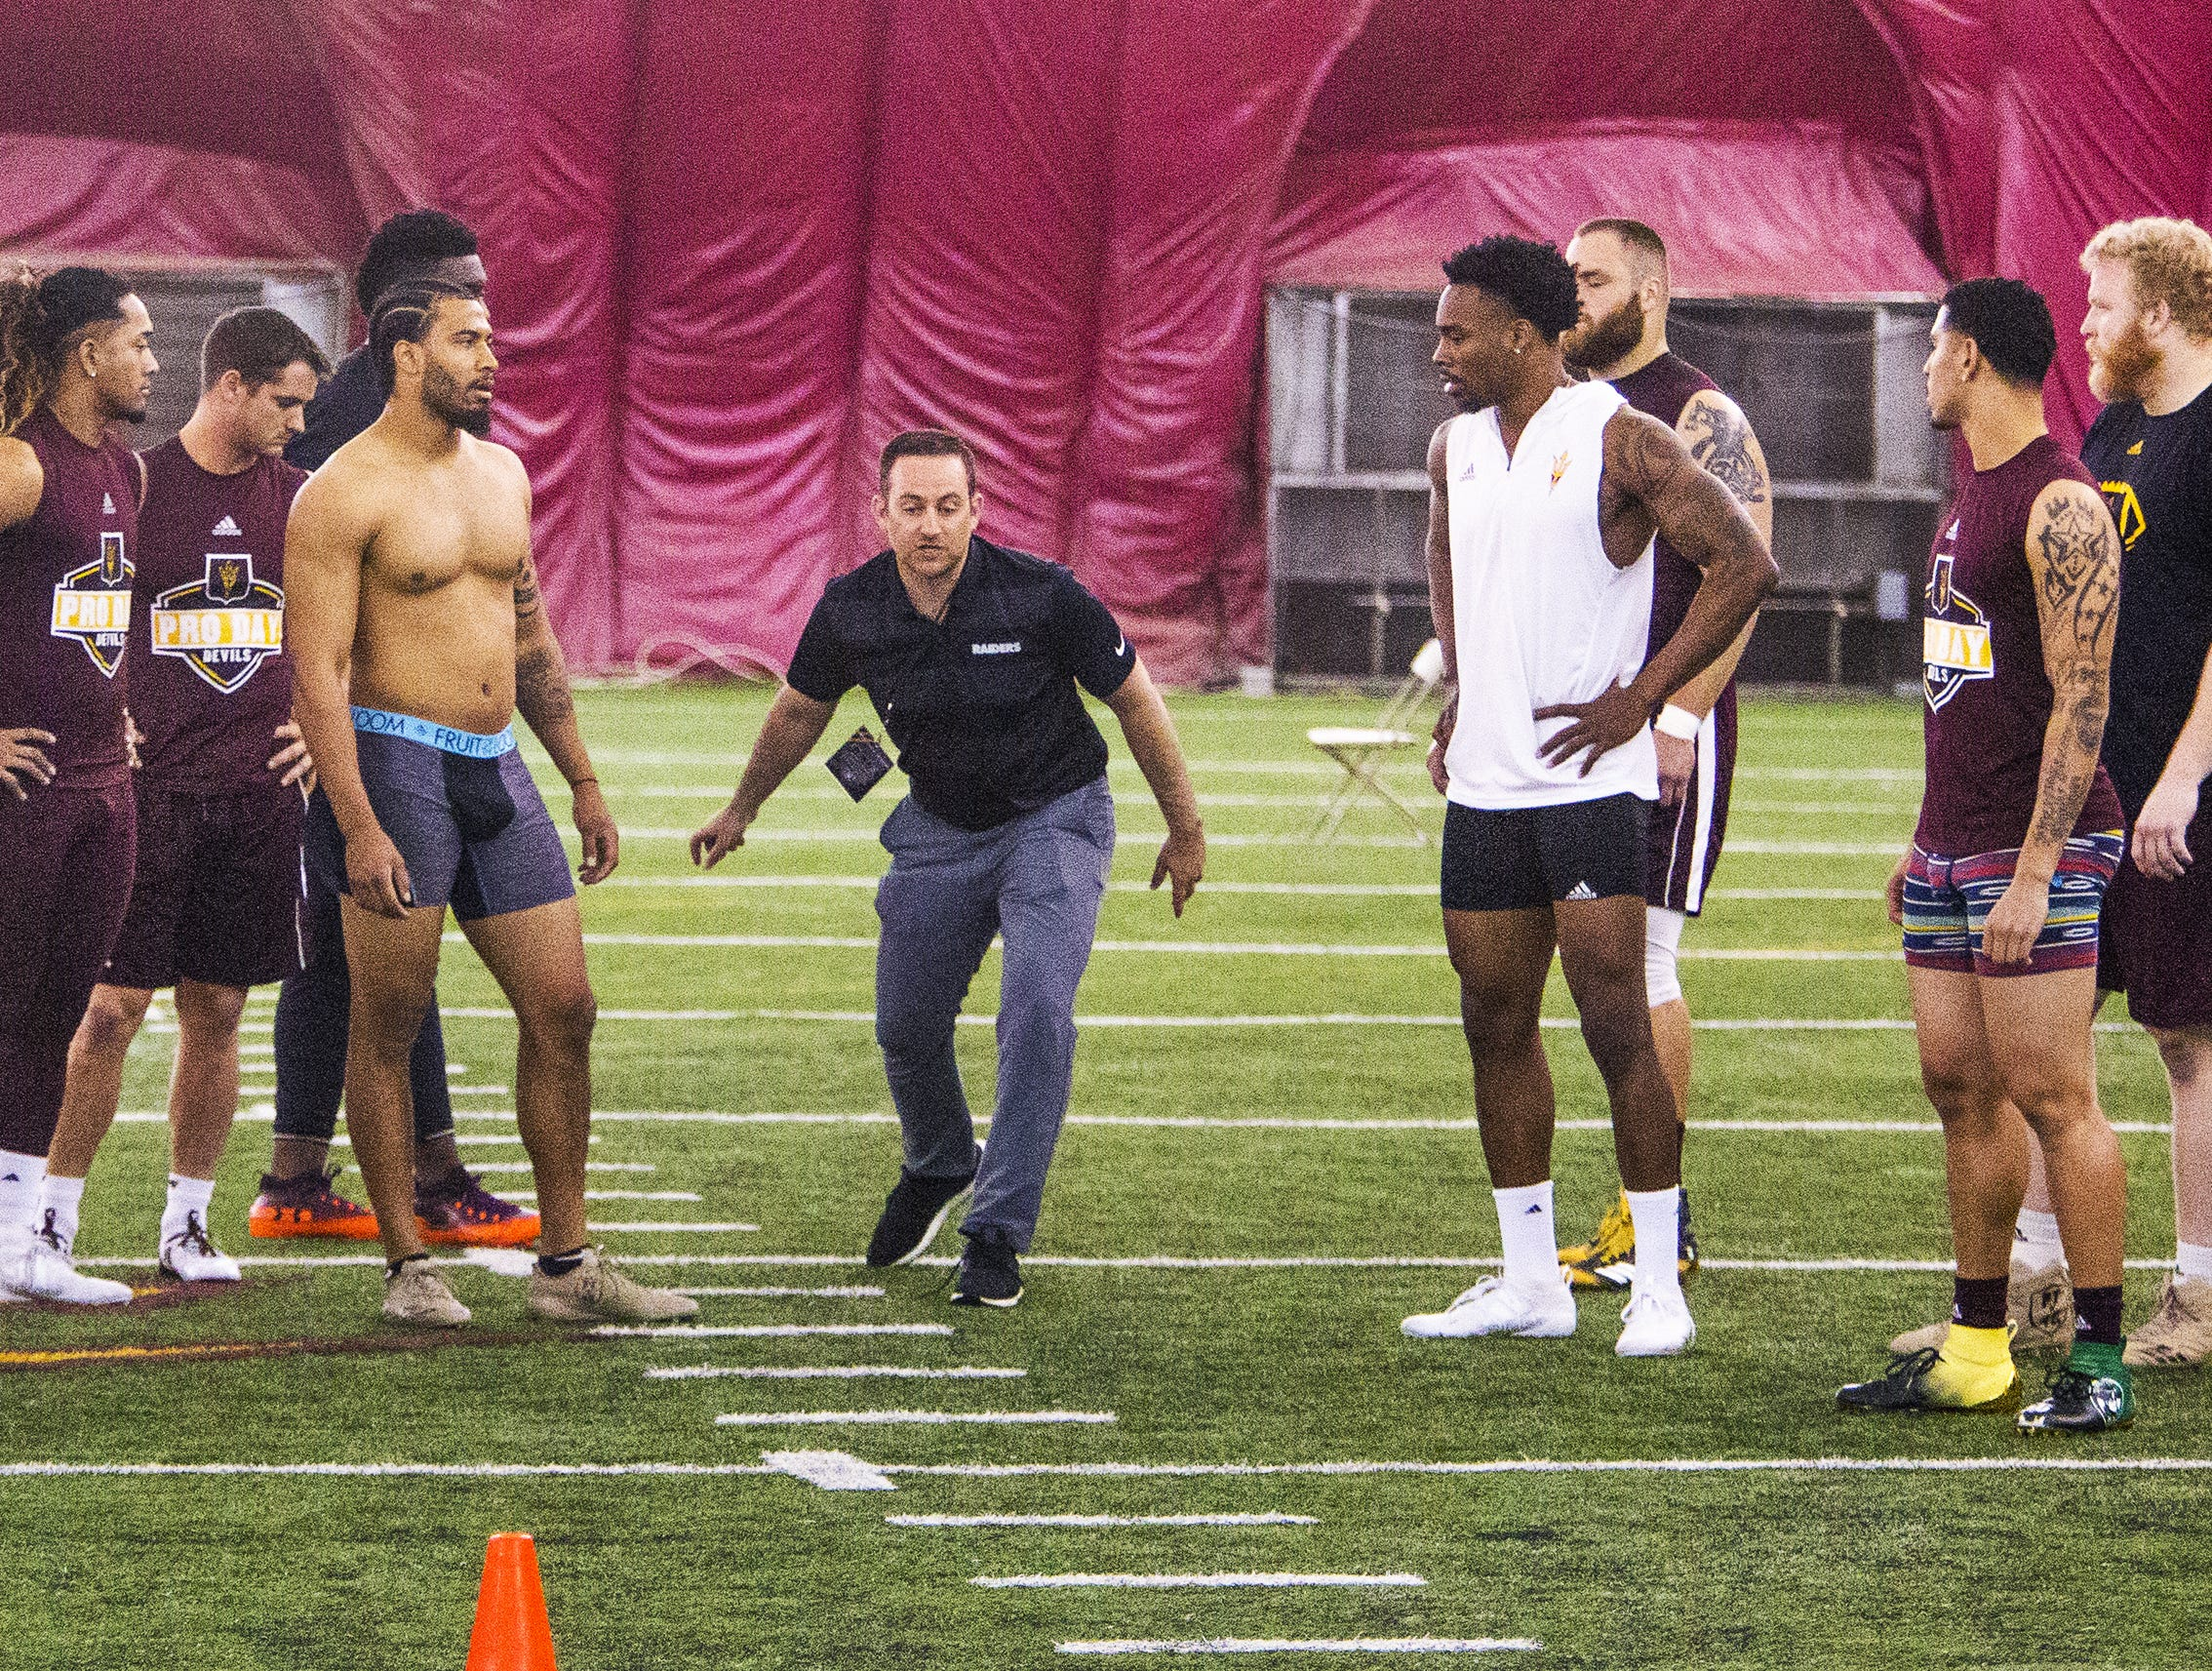 Former college football players attend the ASU 2019 Football Pro Day held on campus in Tempe, Wednesday, March 27, 2019.